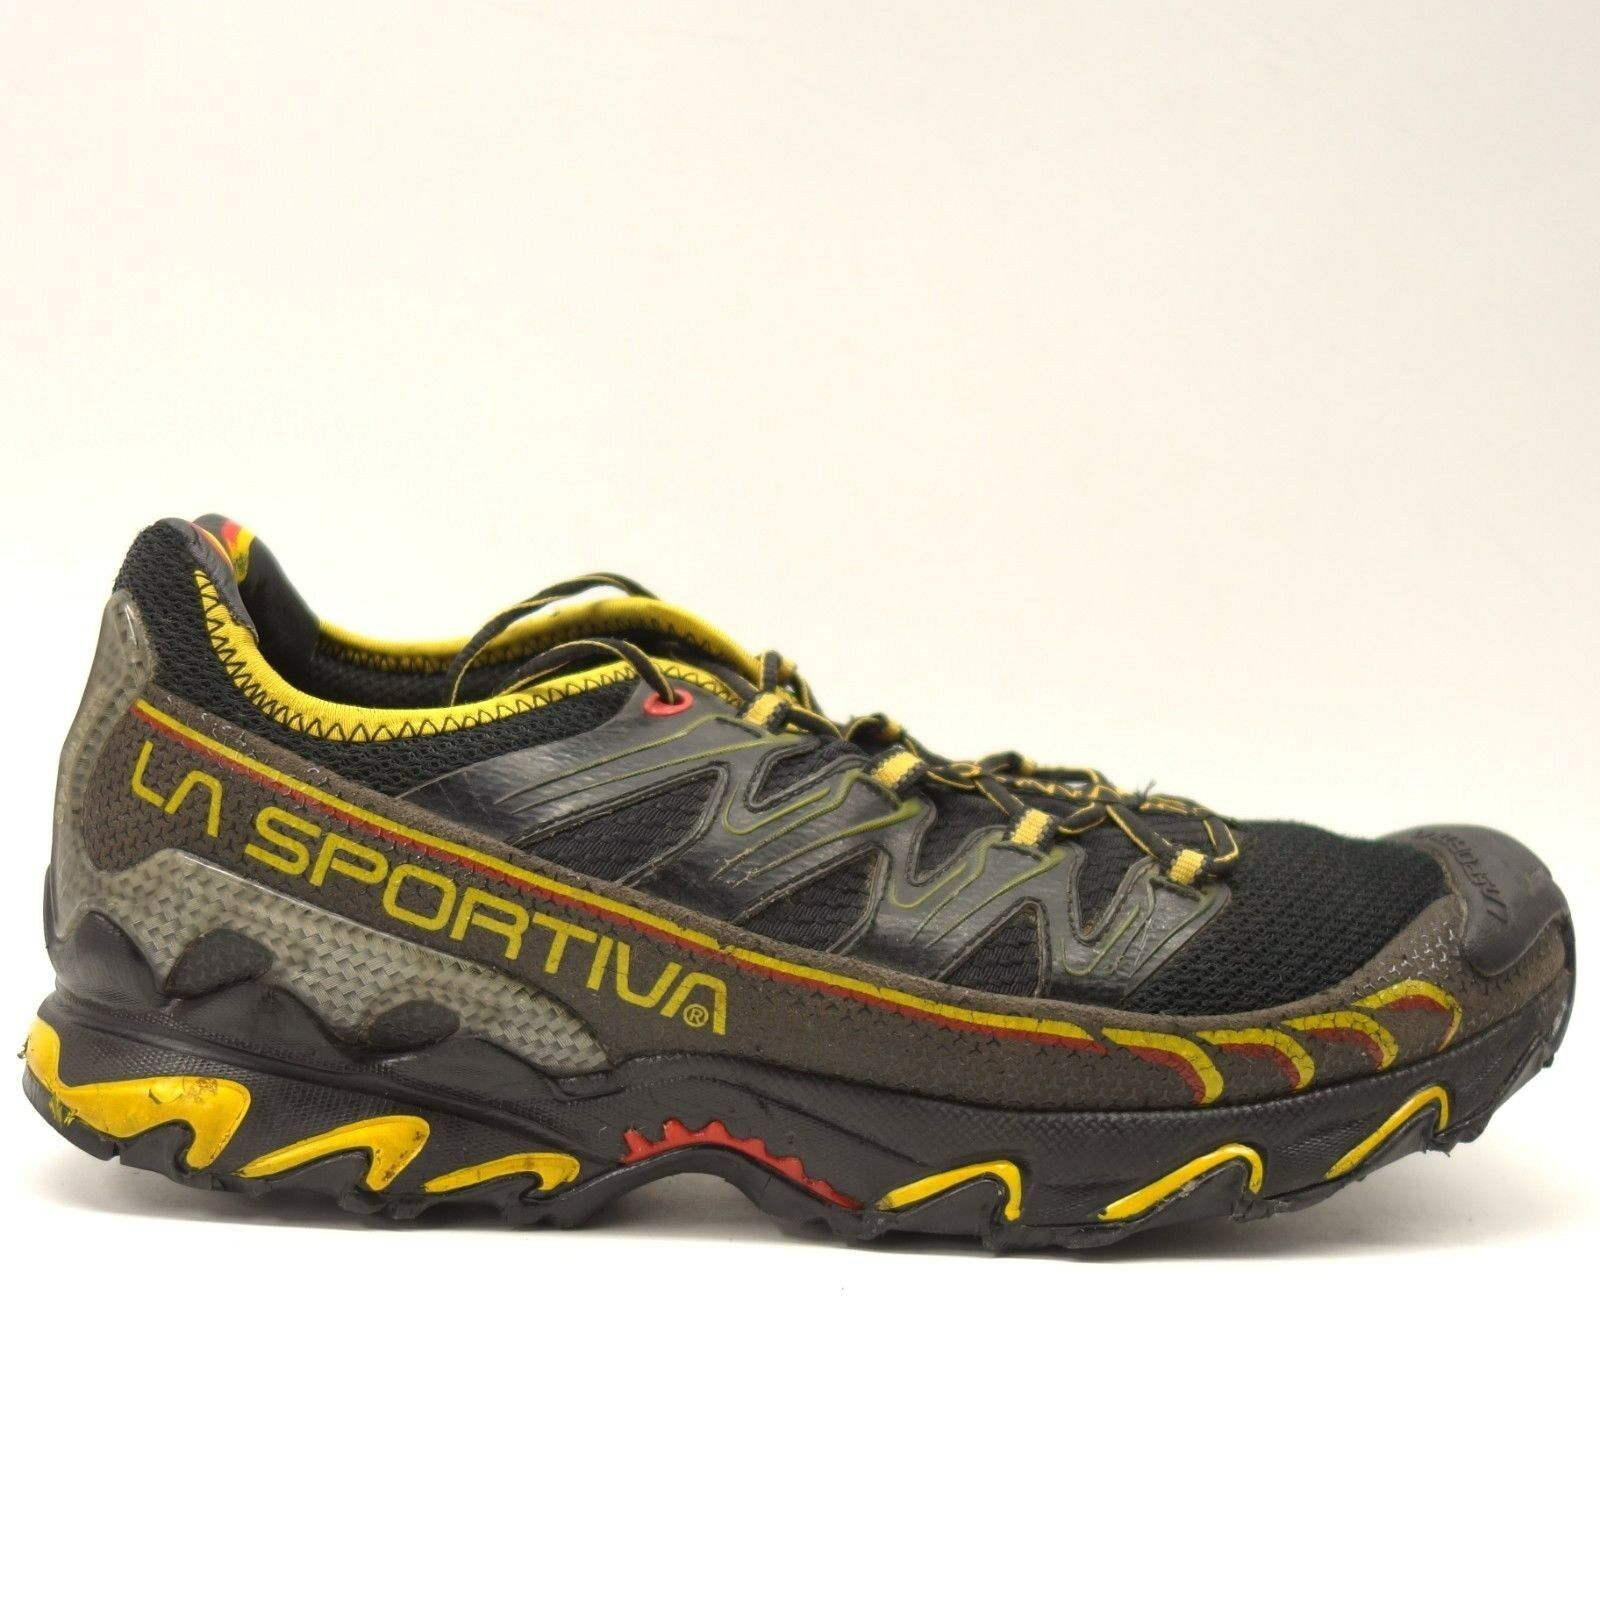 La Sportiva Mens Black Yellow Ultra Raptor Athletic Running Trail shoes Size 12